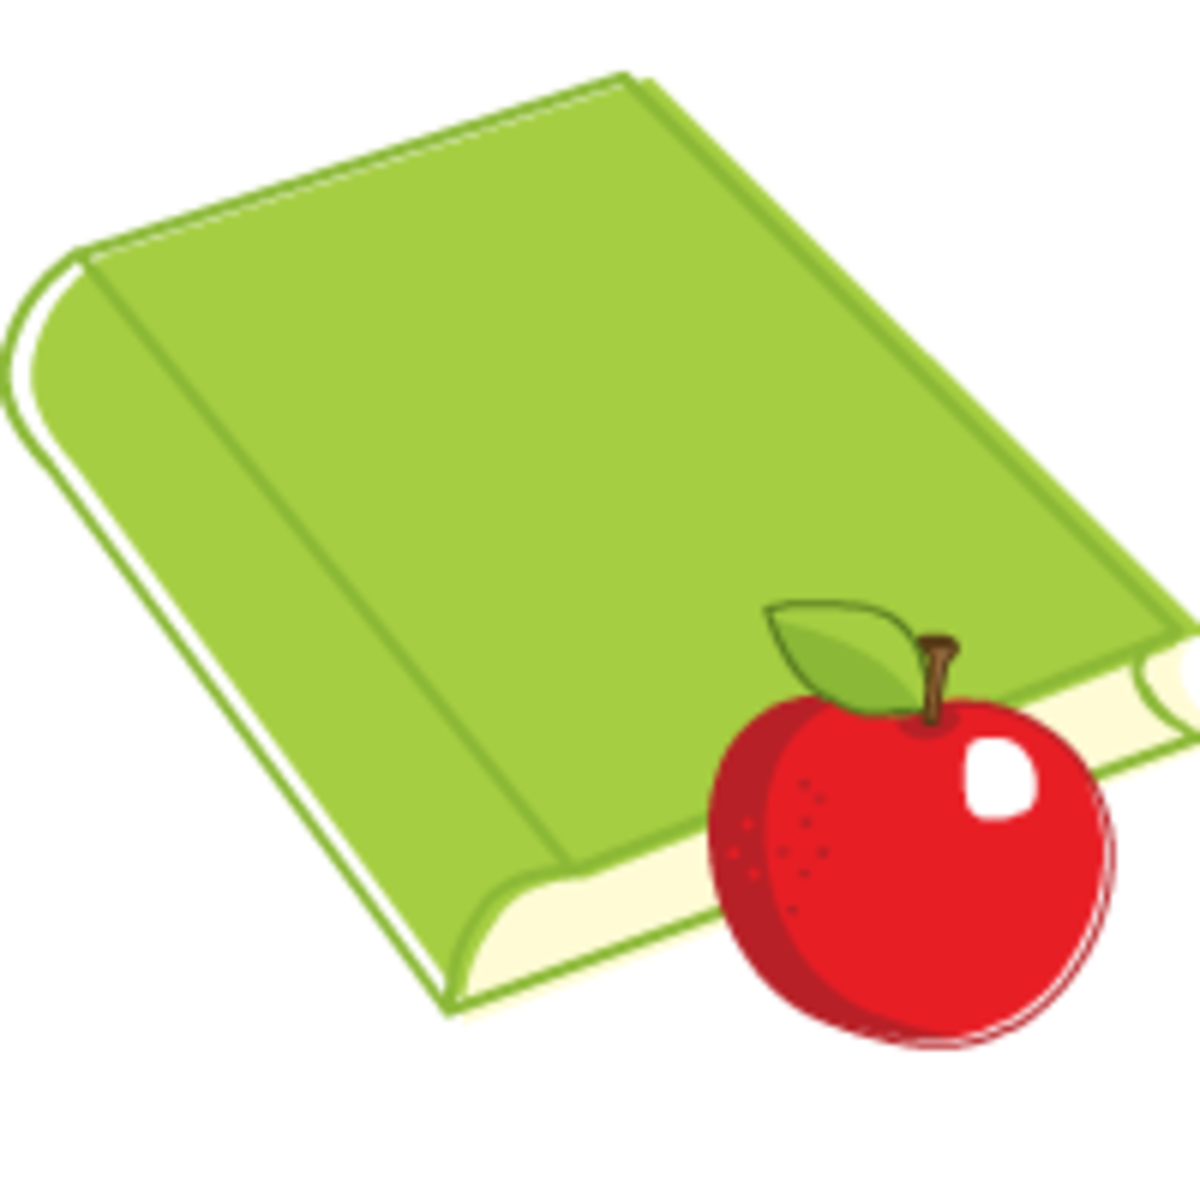 Back to school clip art: book and a red apple for the teacher